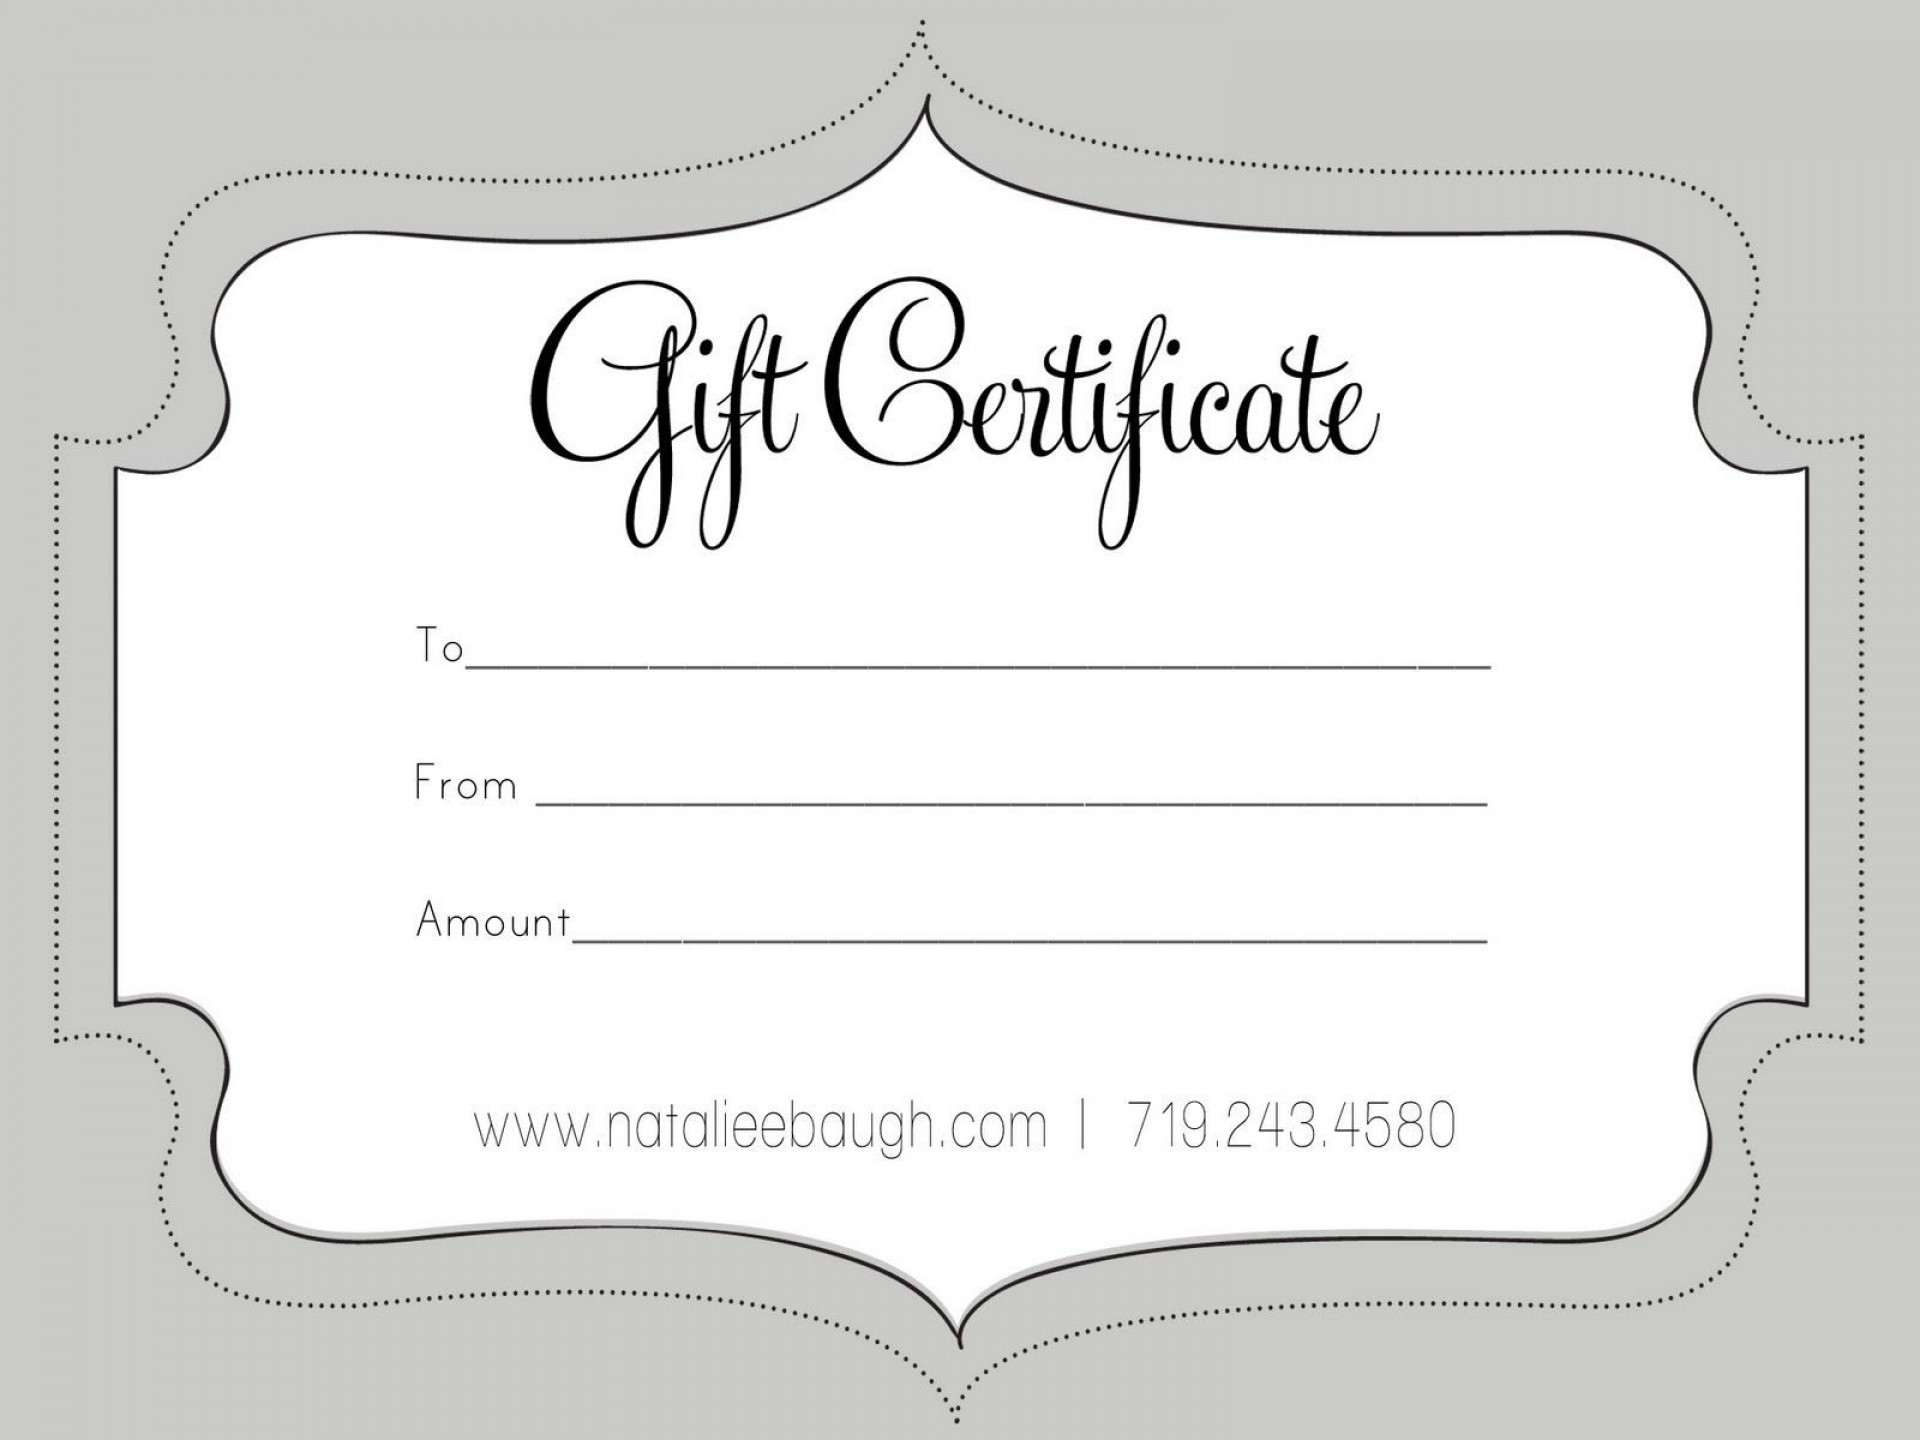 003 Awesome Blank Gift Certificate Template High Def  Free Printable Downloadable1920